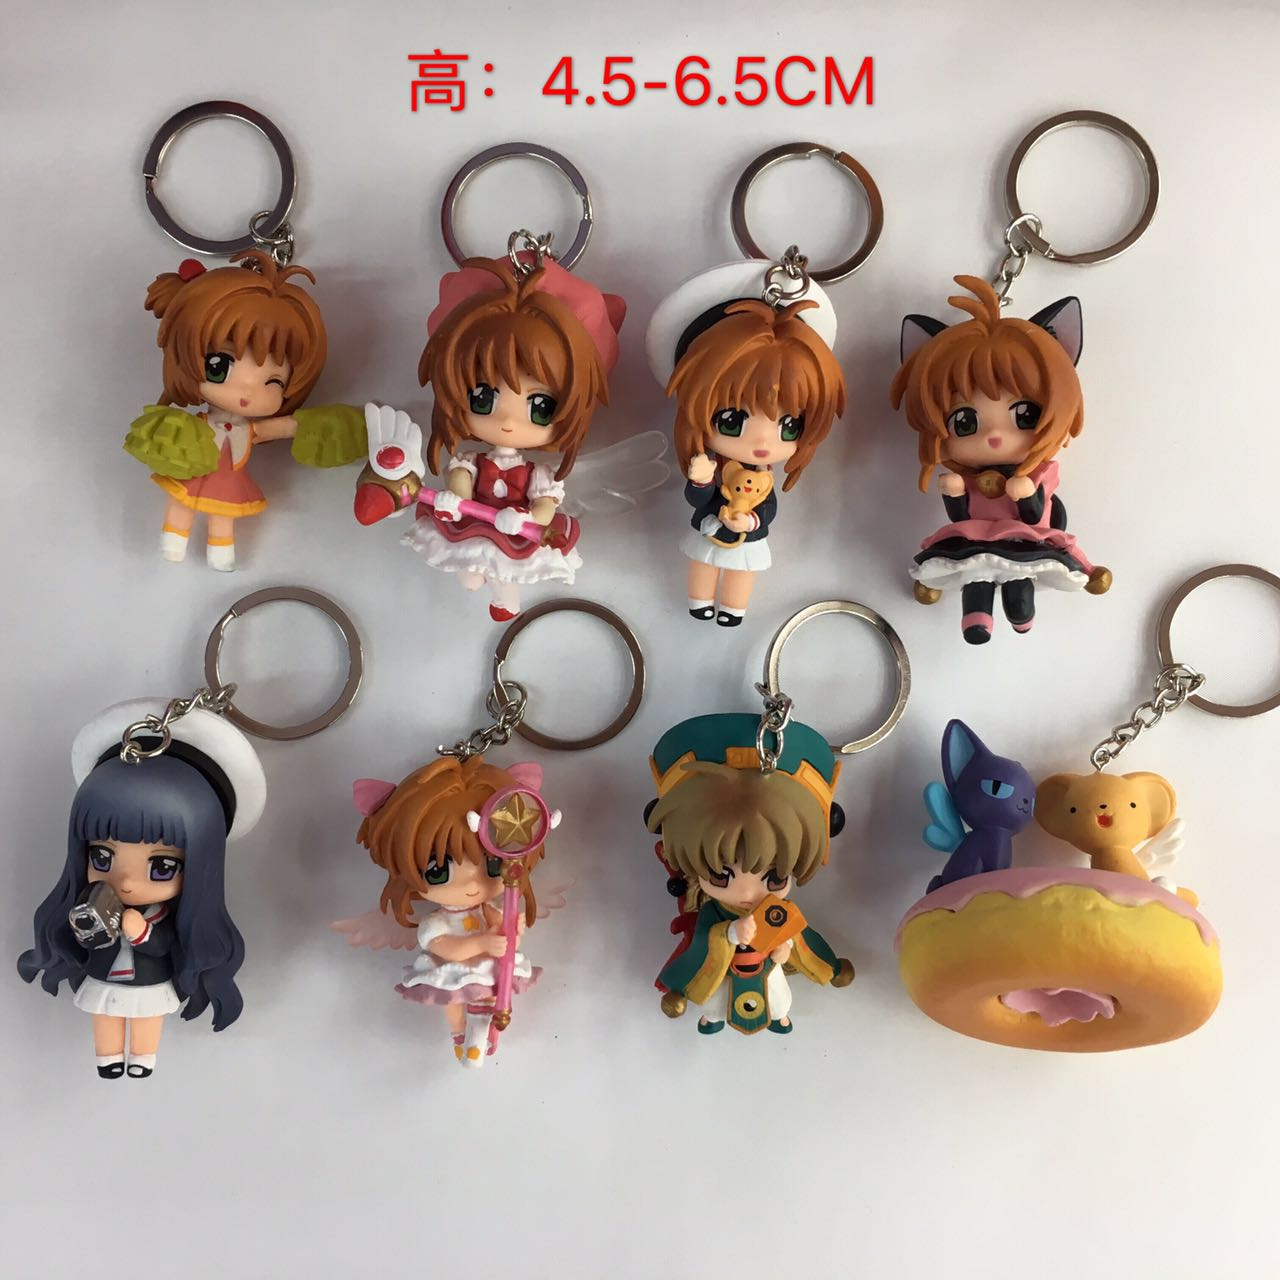 Anime Card Captor Sakura PVC Figures Toys Keychains 8pcs/set Kinomoto Sakura Daidouji Tomoyo Li Syaoran Kero anime card captor sakura the clow kero backpack girls shoulder bag pink cute travelling bag